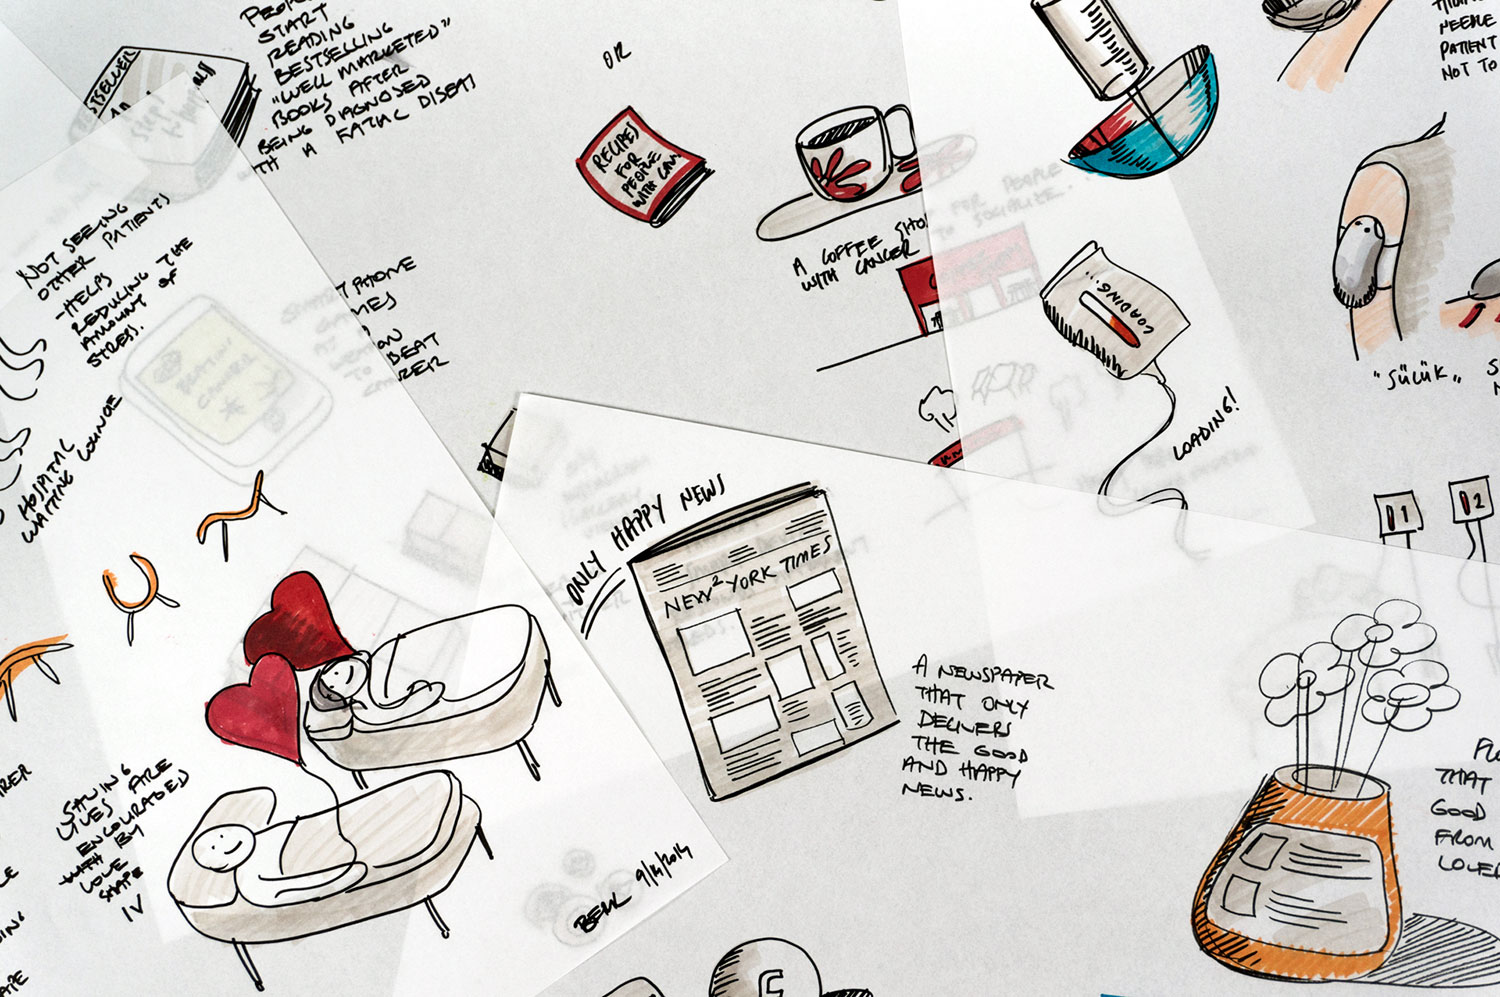 speculative_object_sketches-4